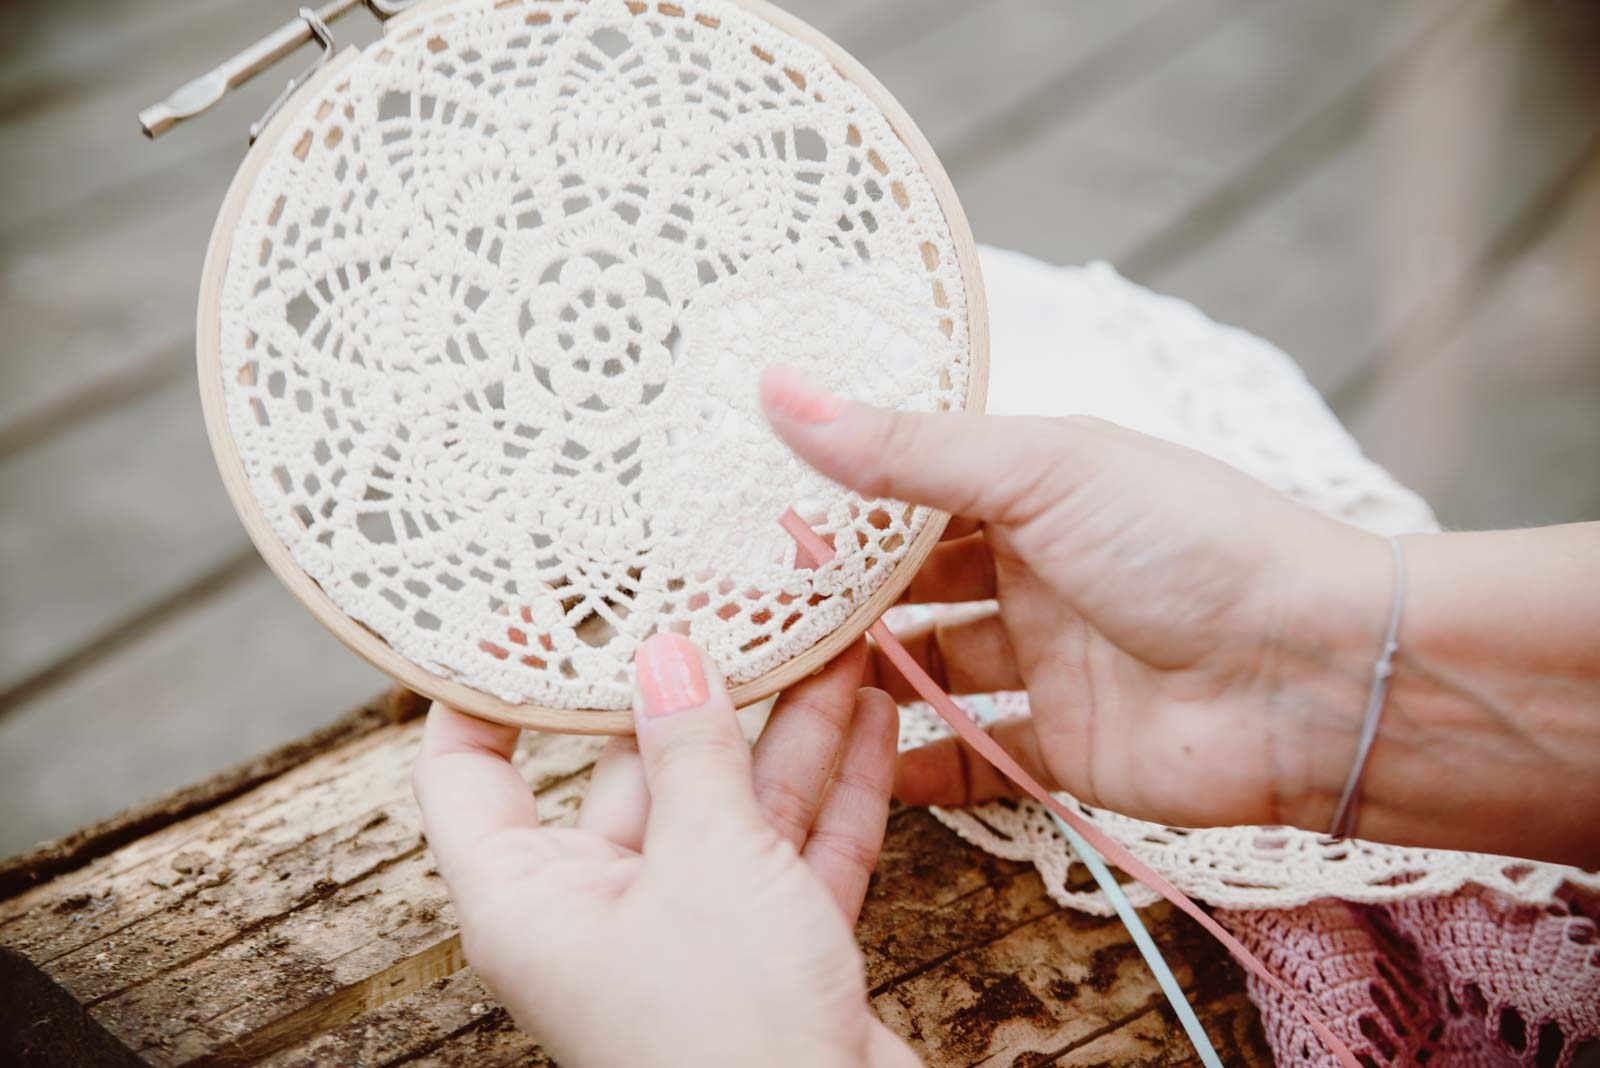 DIY-Dreamcatcher-Boho-Wedding-Dekoration-Traumfaenger-Hochzeitsdekoration-41